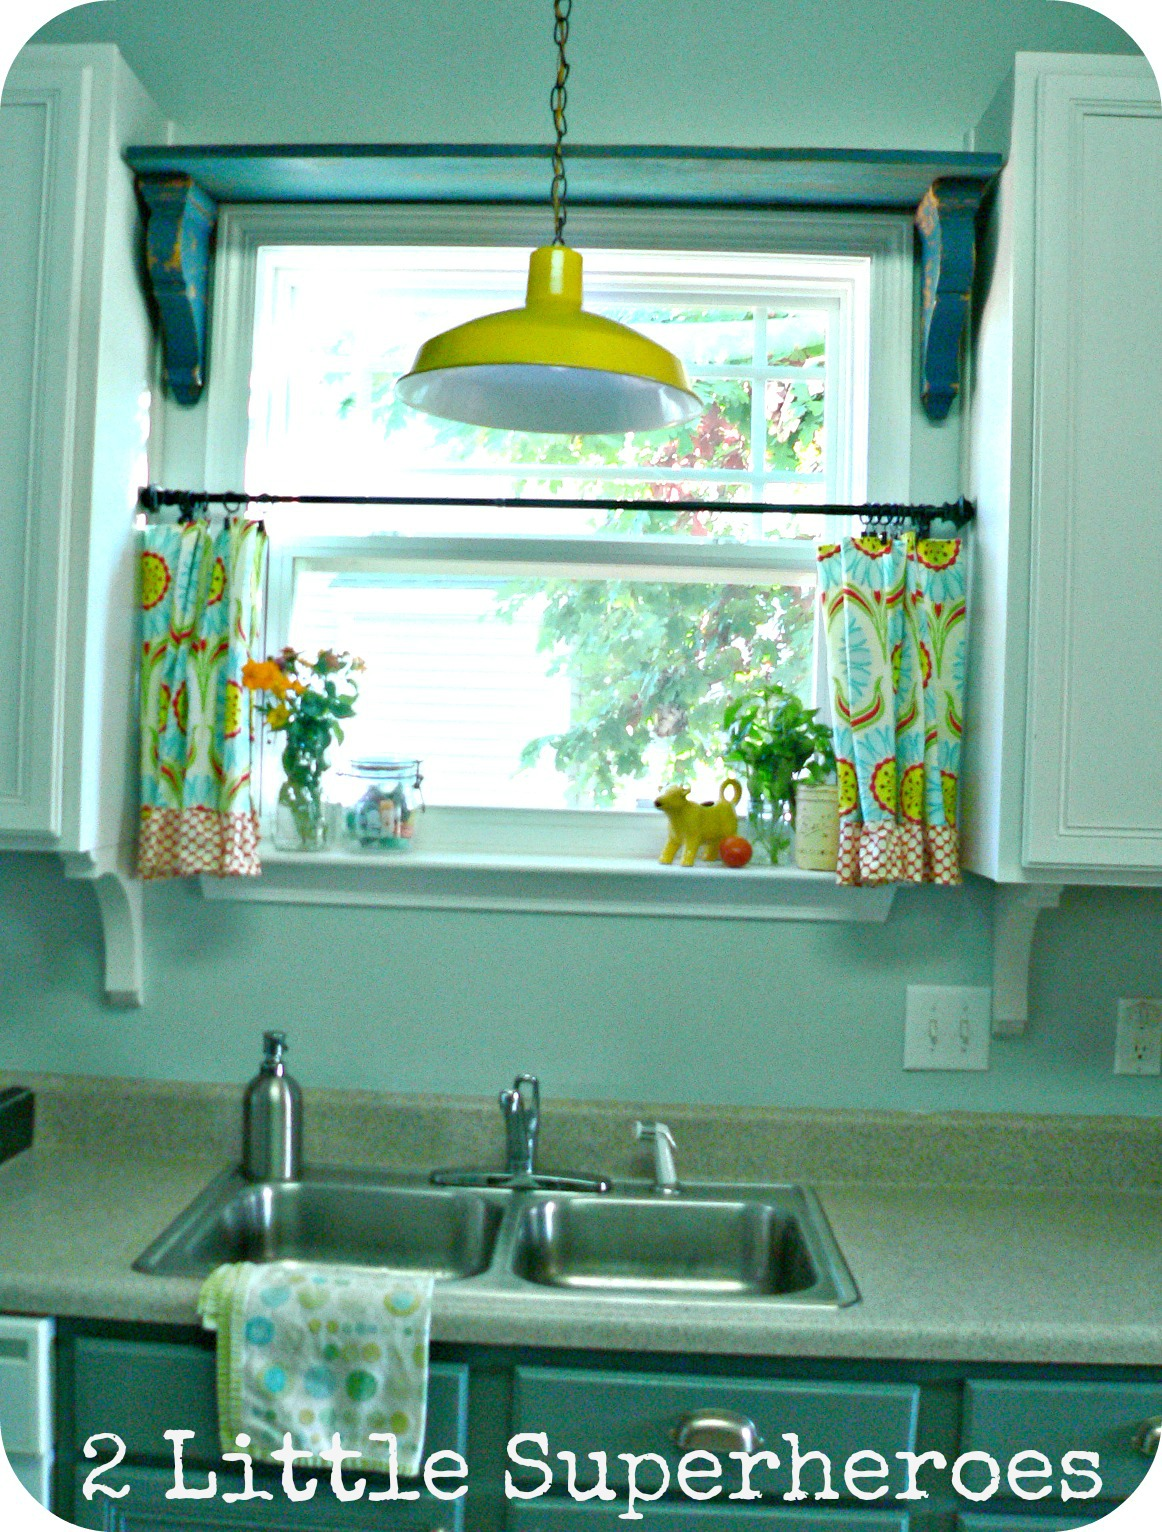 shelfabovewindow1 My Thrifty Kitchen Shelf